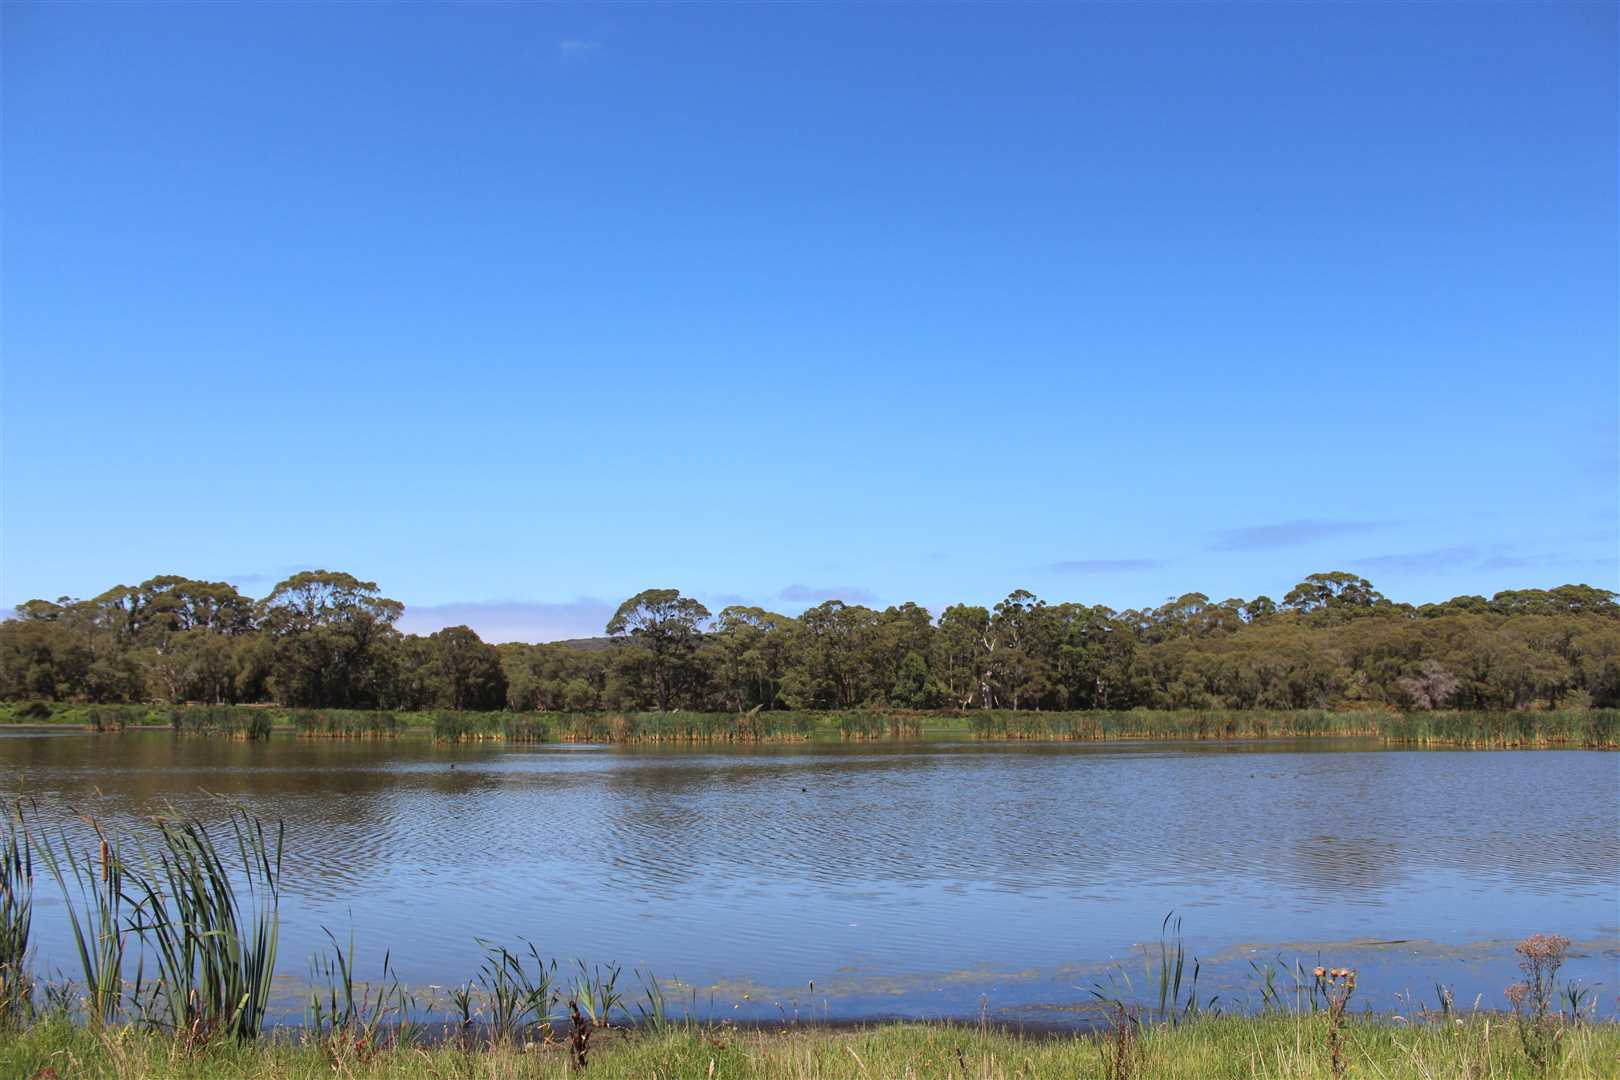 'Lake Saide'  (130ha/321 ac) or for sale as 4 separate lots